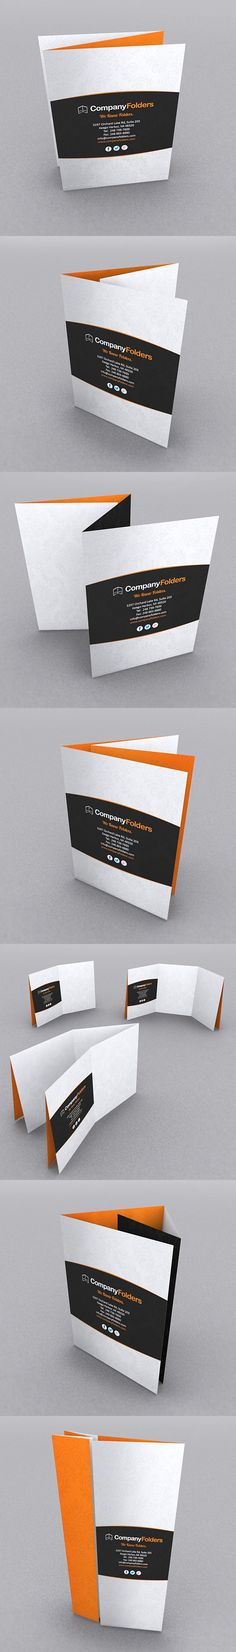 9 Unique Brochure Folds for Inspiration